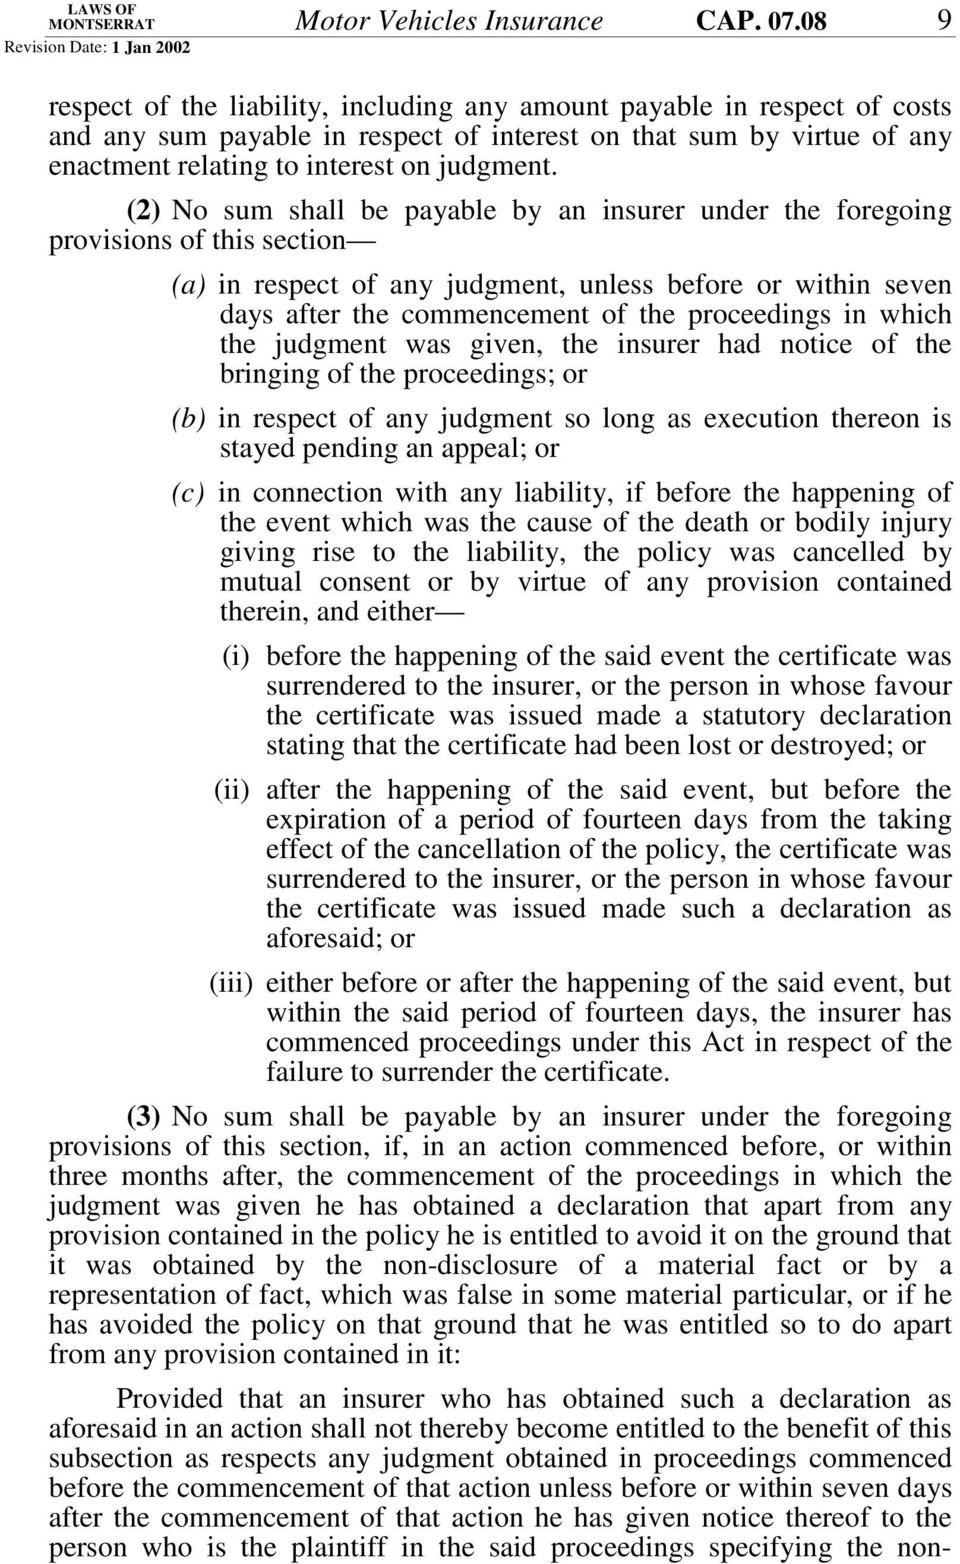 (2) No sum shall be payable by an insurer under the foregoing provisions of this section (a) in respect of any judgment, unless before or within seven days after the commencement of the proceedings